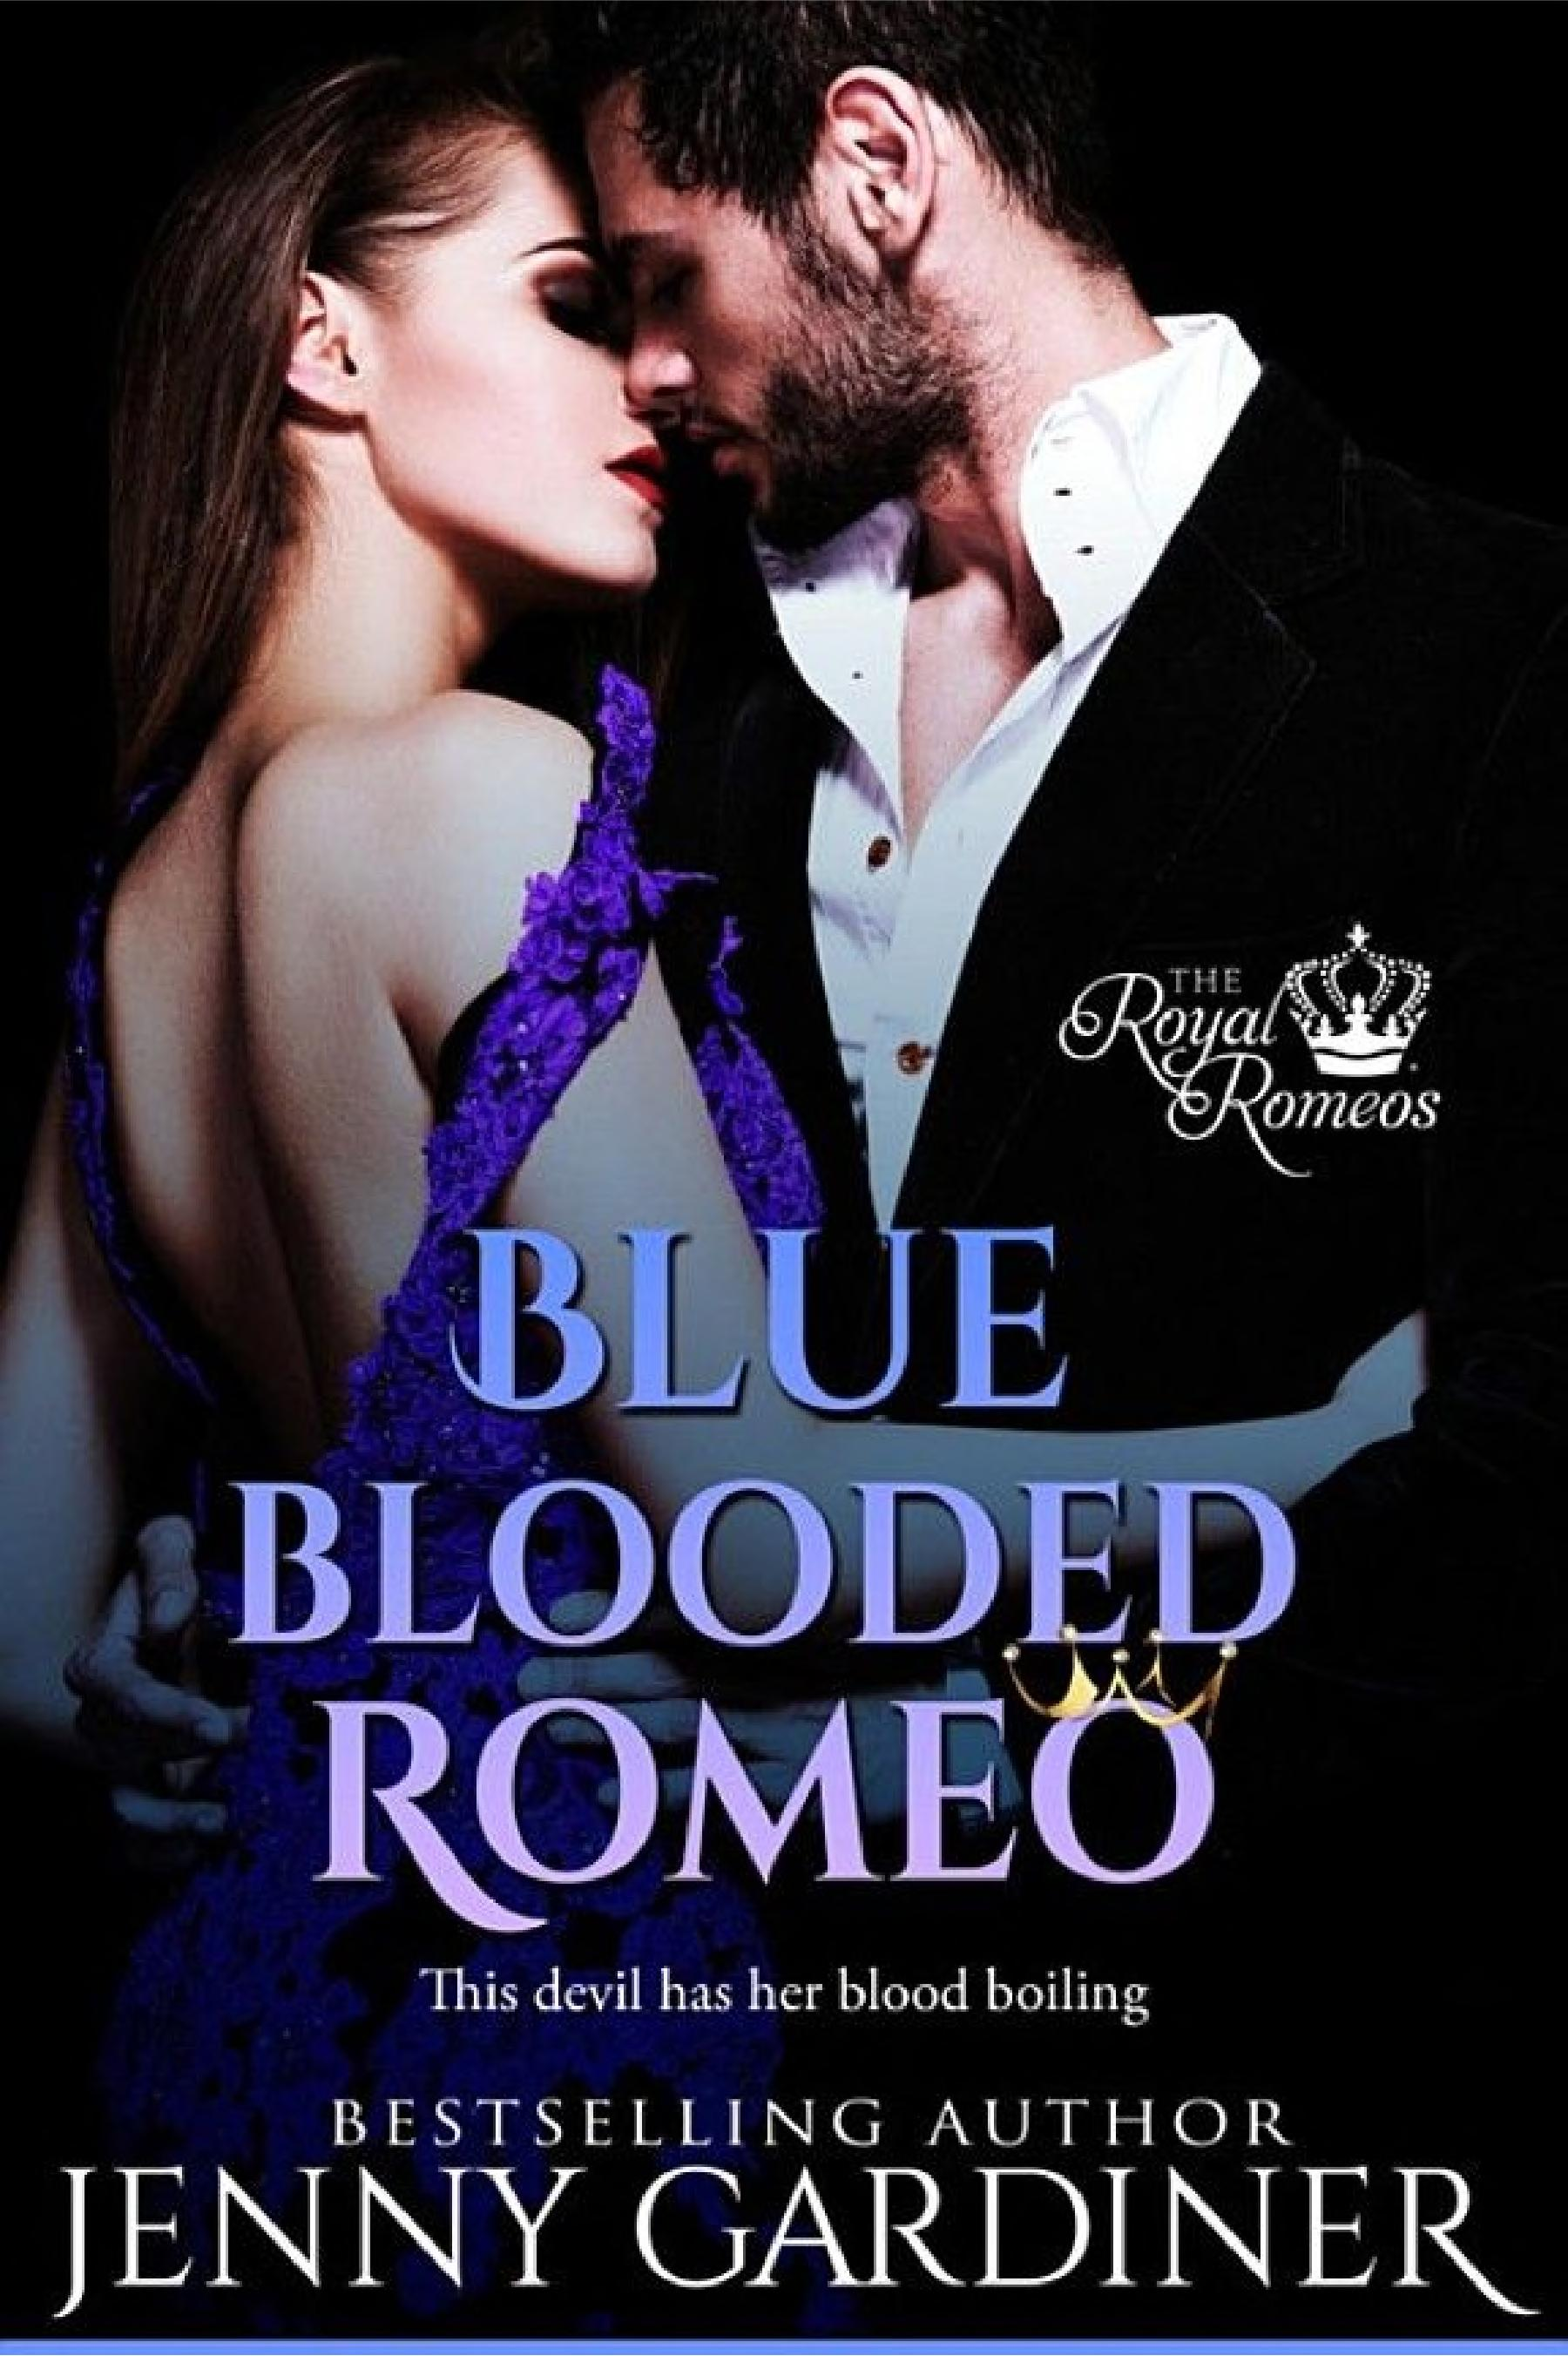 Blue Blooded Romeo